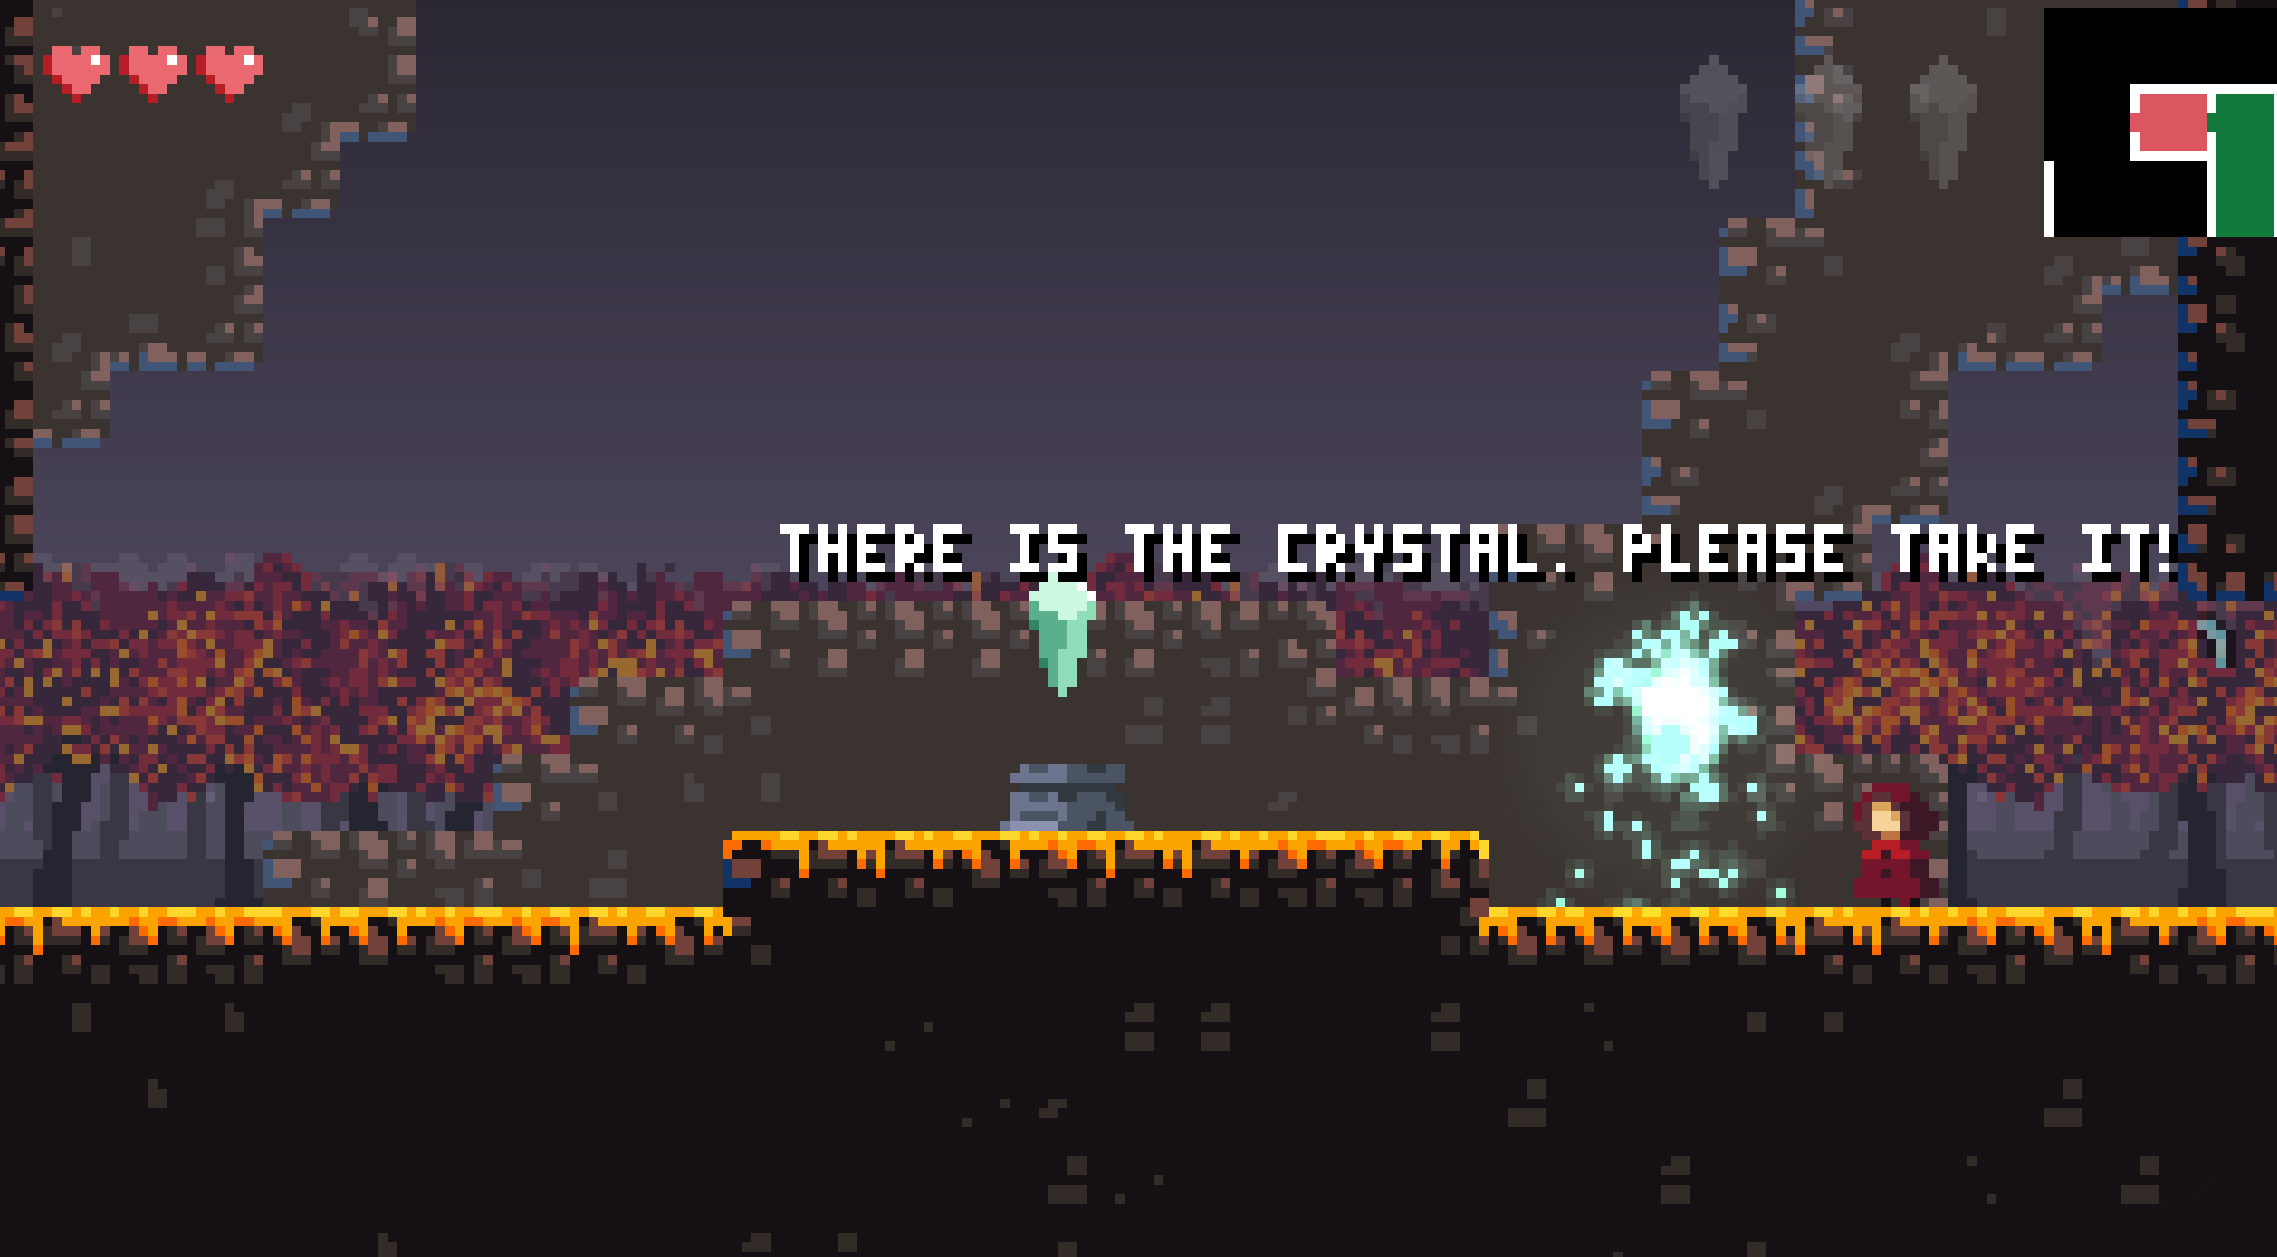 Encountering the first crystal in the game Sealed Bite, which unlocks wall hang powers.